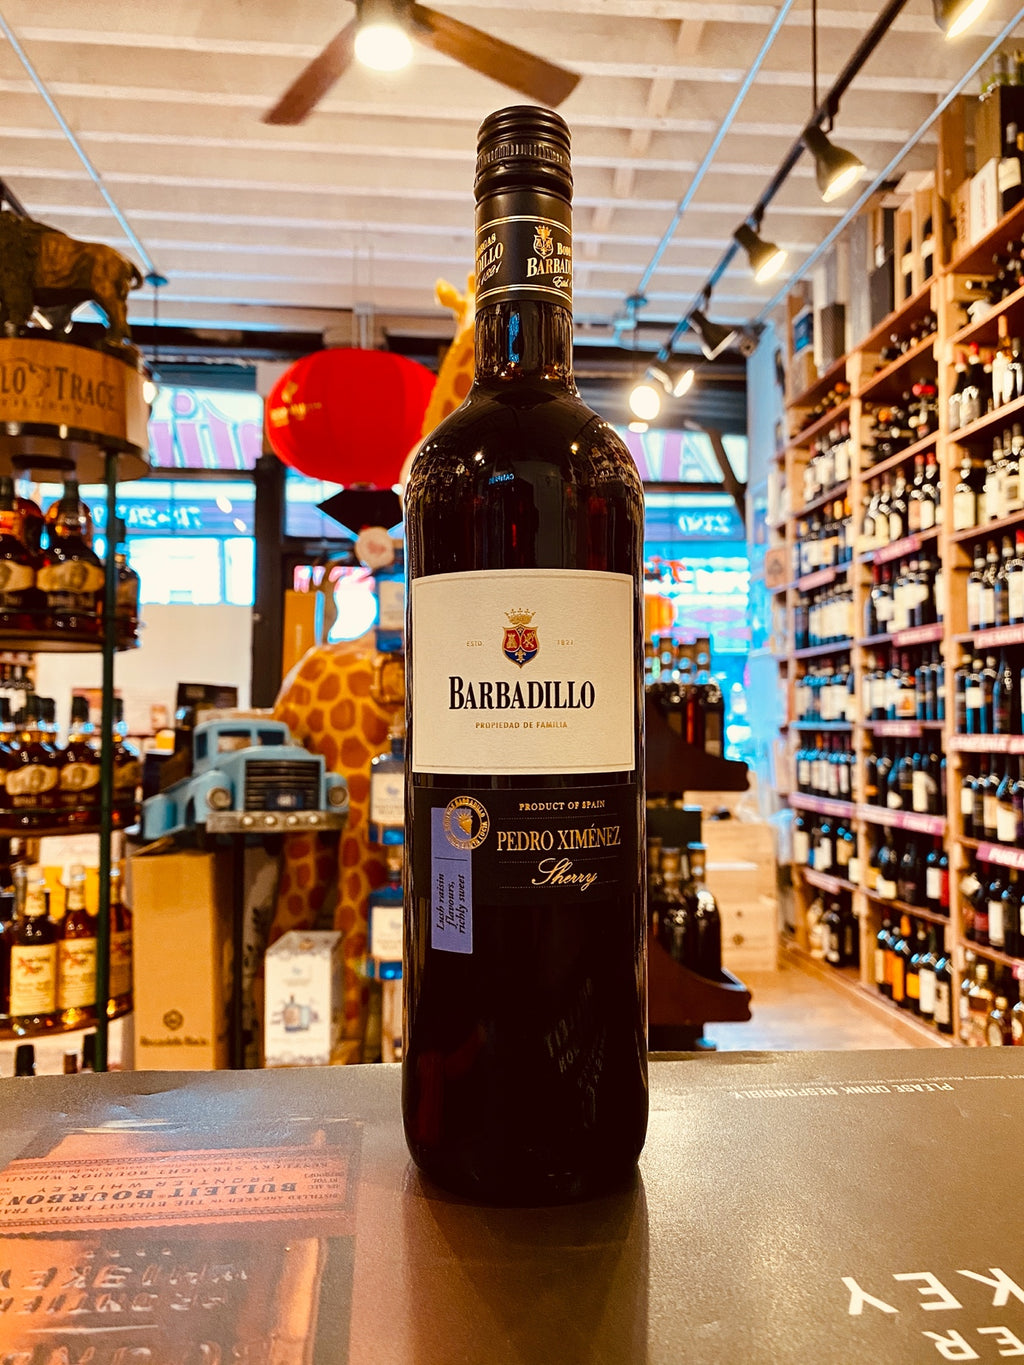 Barbadillo Pedro Ximenez Sherry 750mL